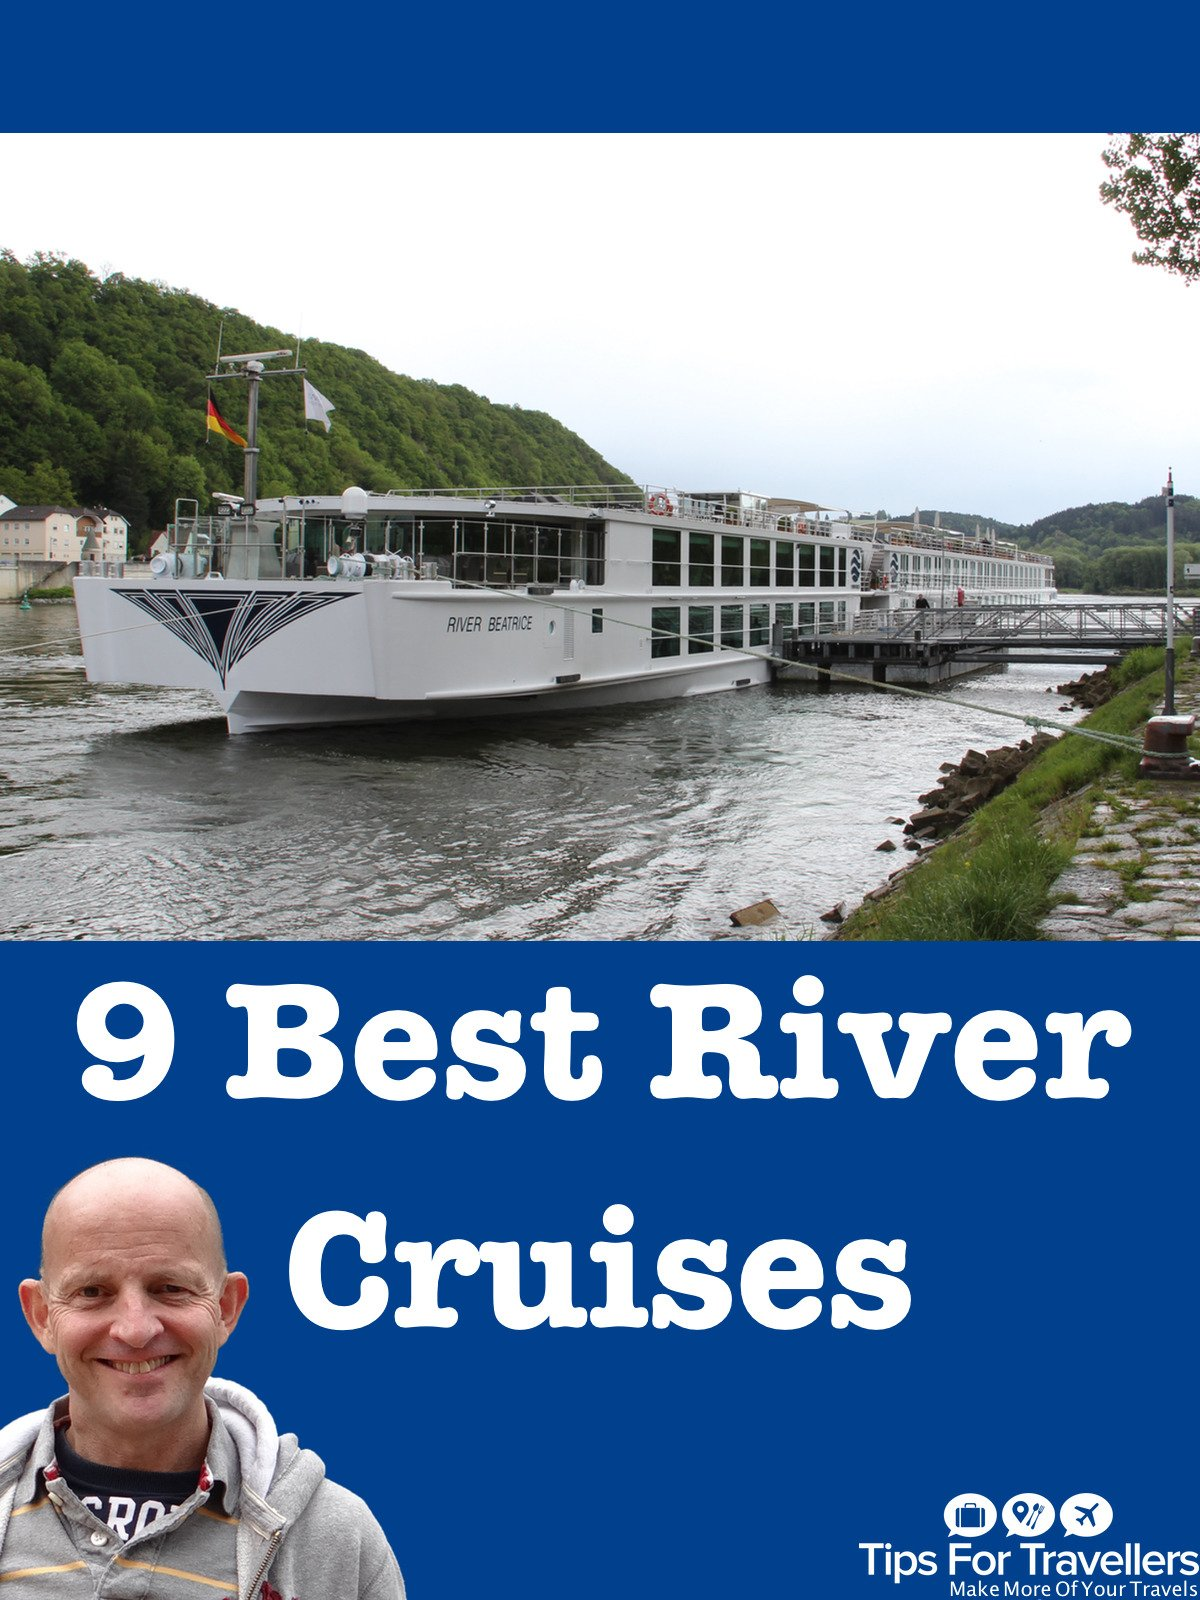 Clip: 9 Best River Cruises